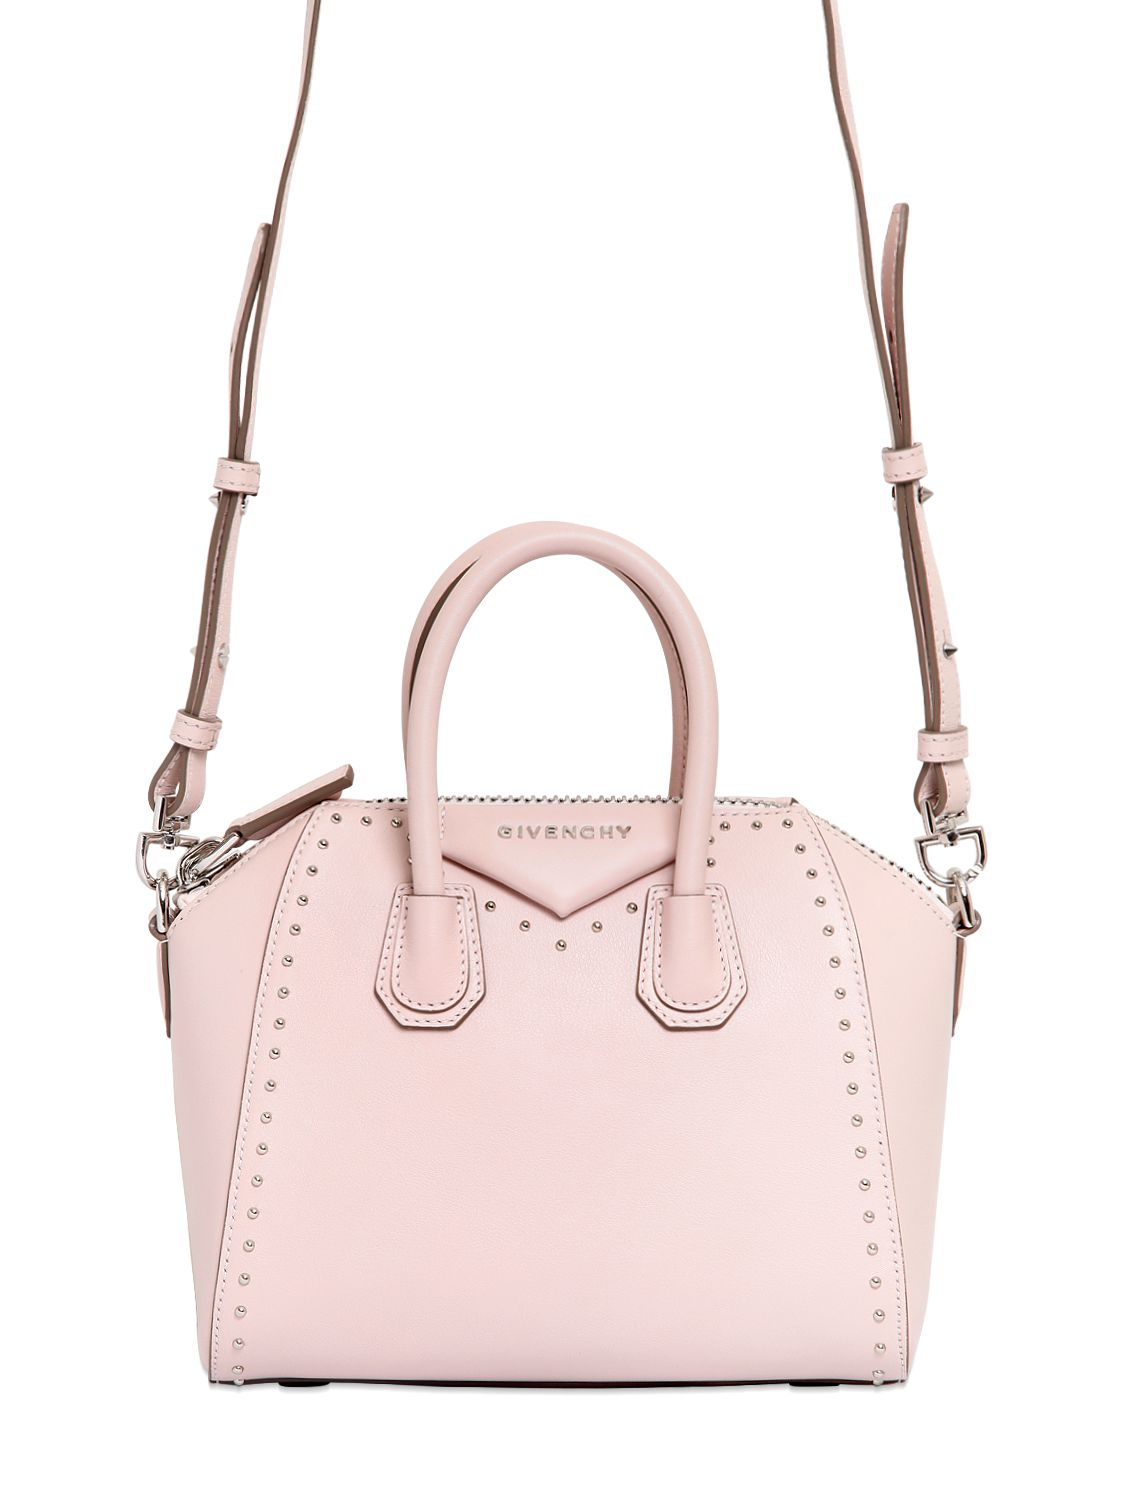 5905aa8dfc5c Lyst - Givenchy Antigona Mini Leather Cross-body Bag in Pink